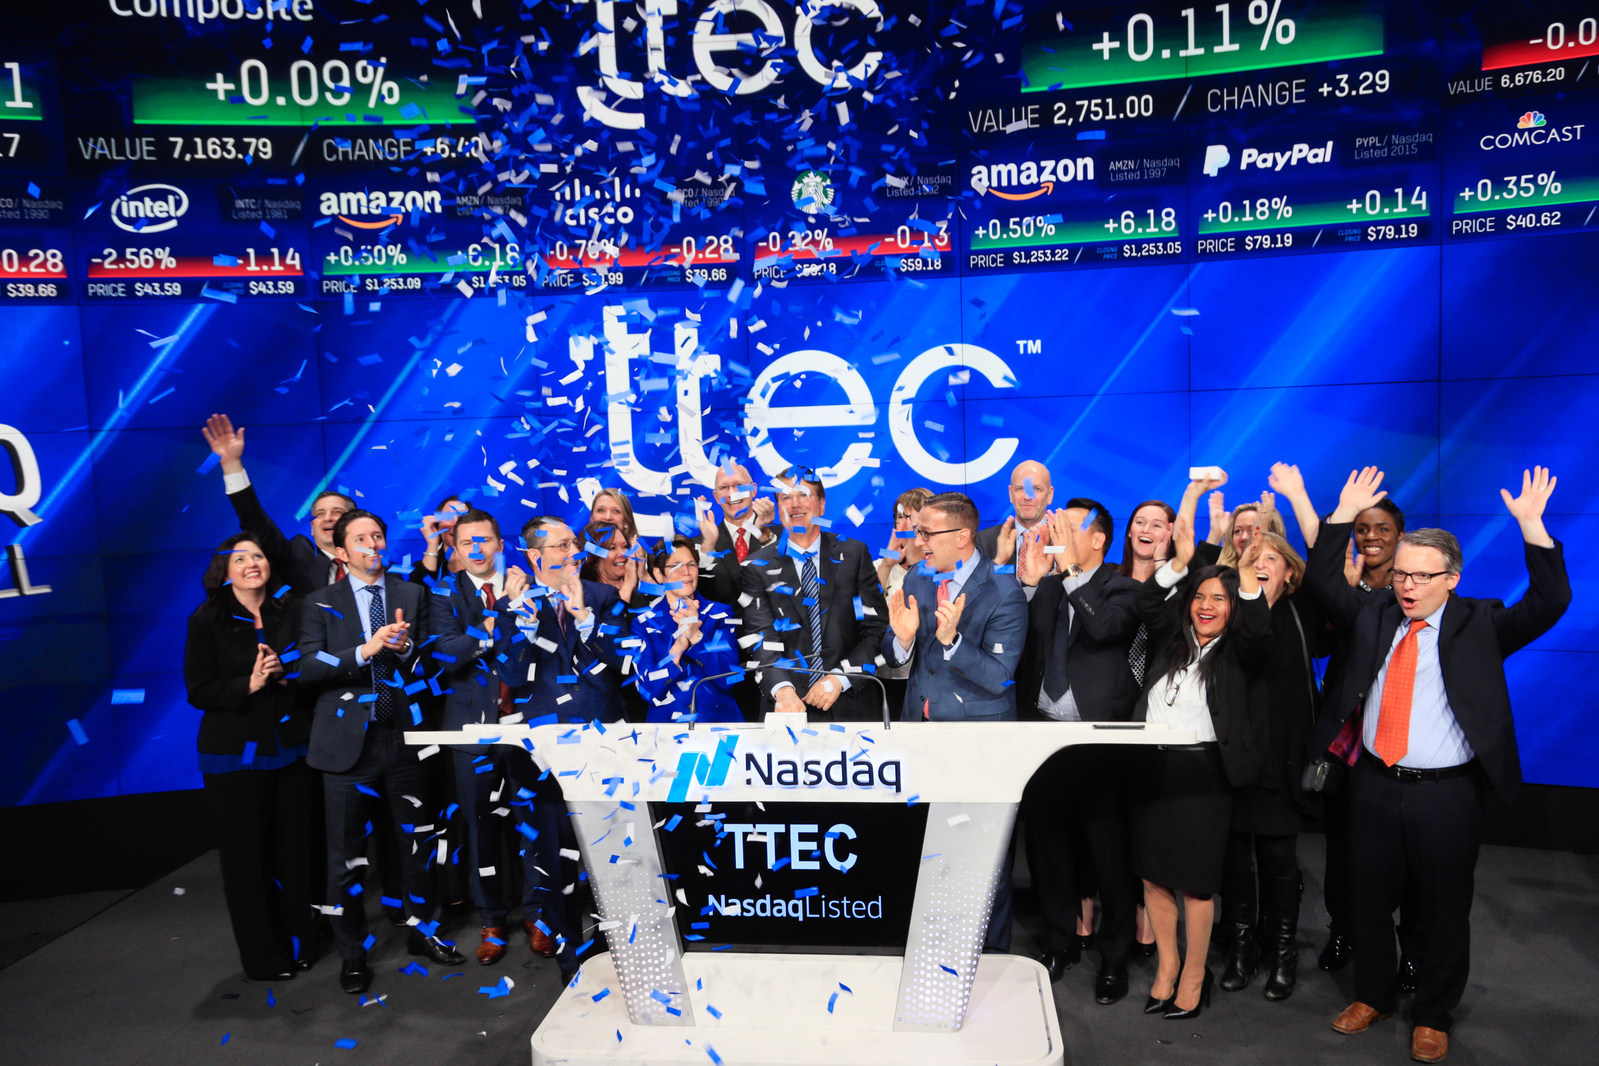 Customer Experience Pioneer and Leader TTEC Launches New Look to Complement New Name